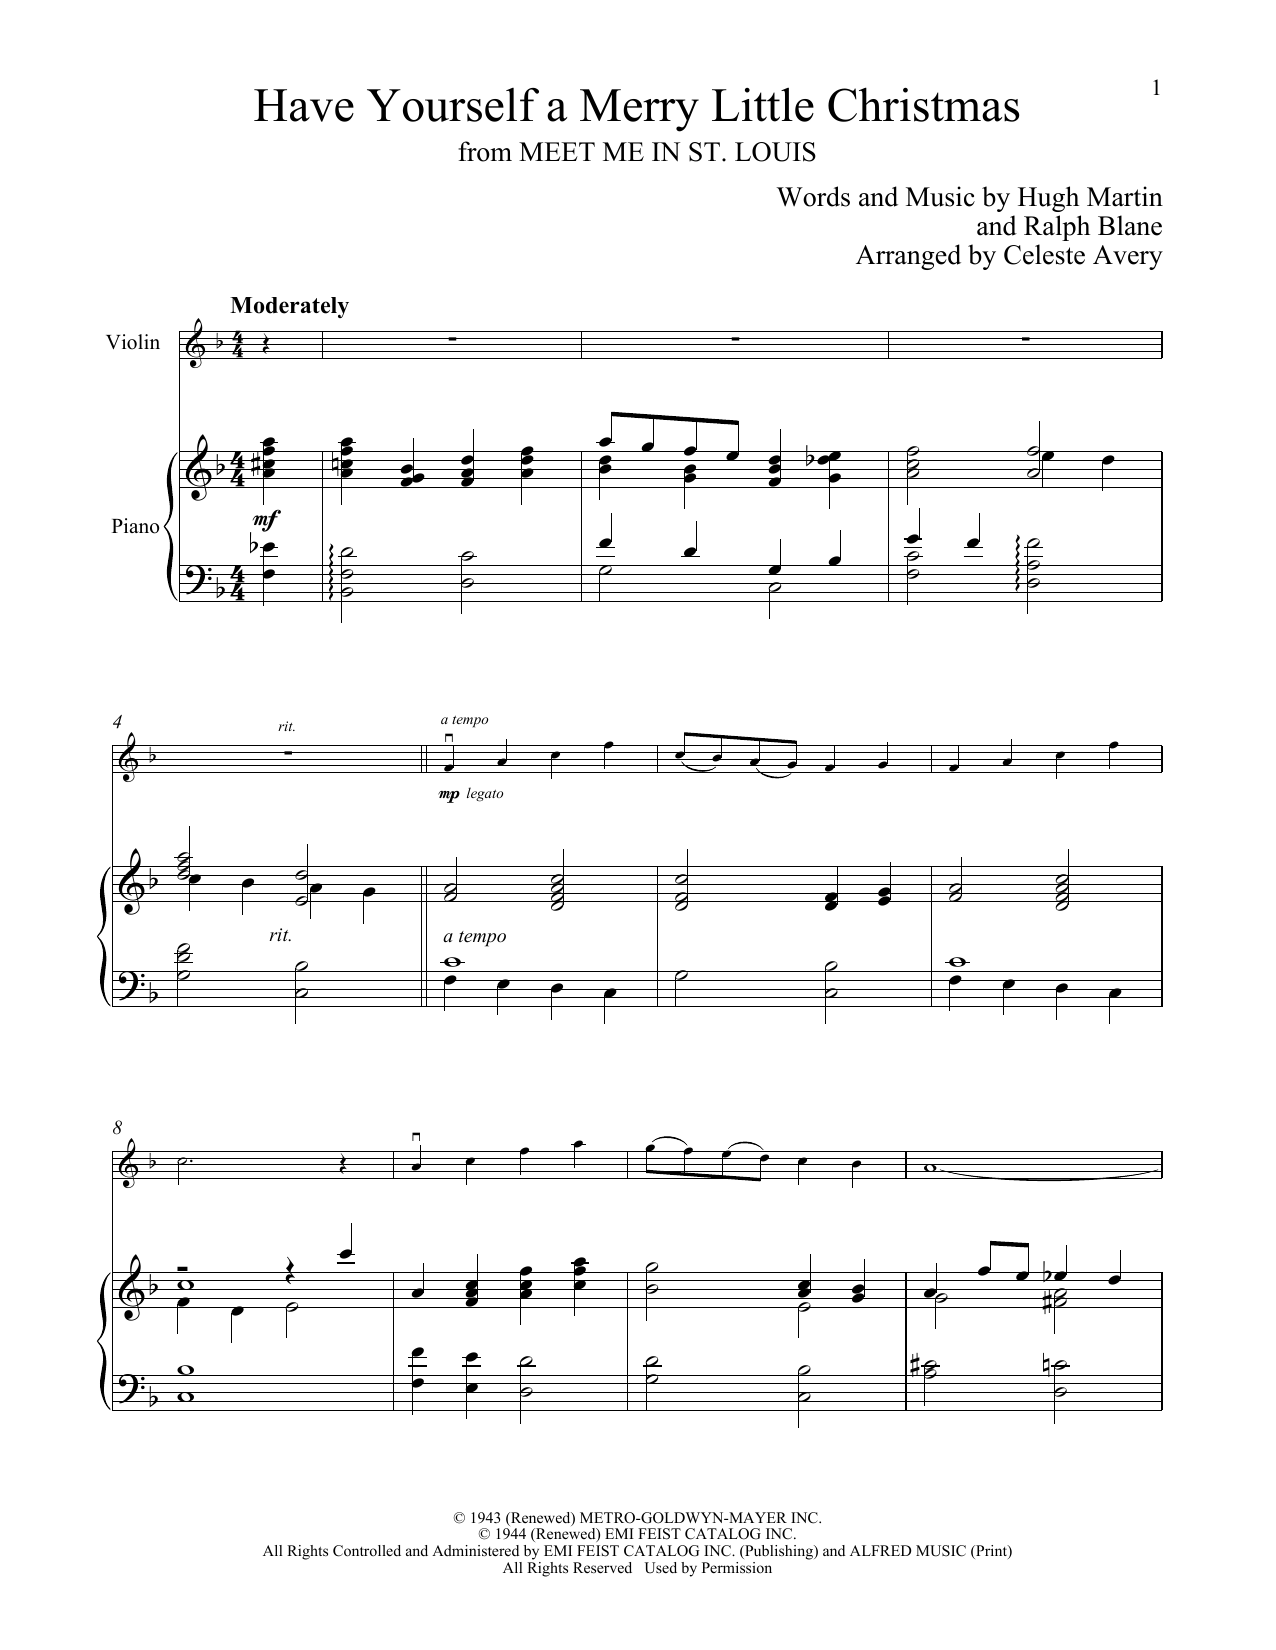 Have Yourself A Merry Little Christmas Violin Sheet Music.Sheet Music Digital Files To Print Licensed Ralph Blane